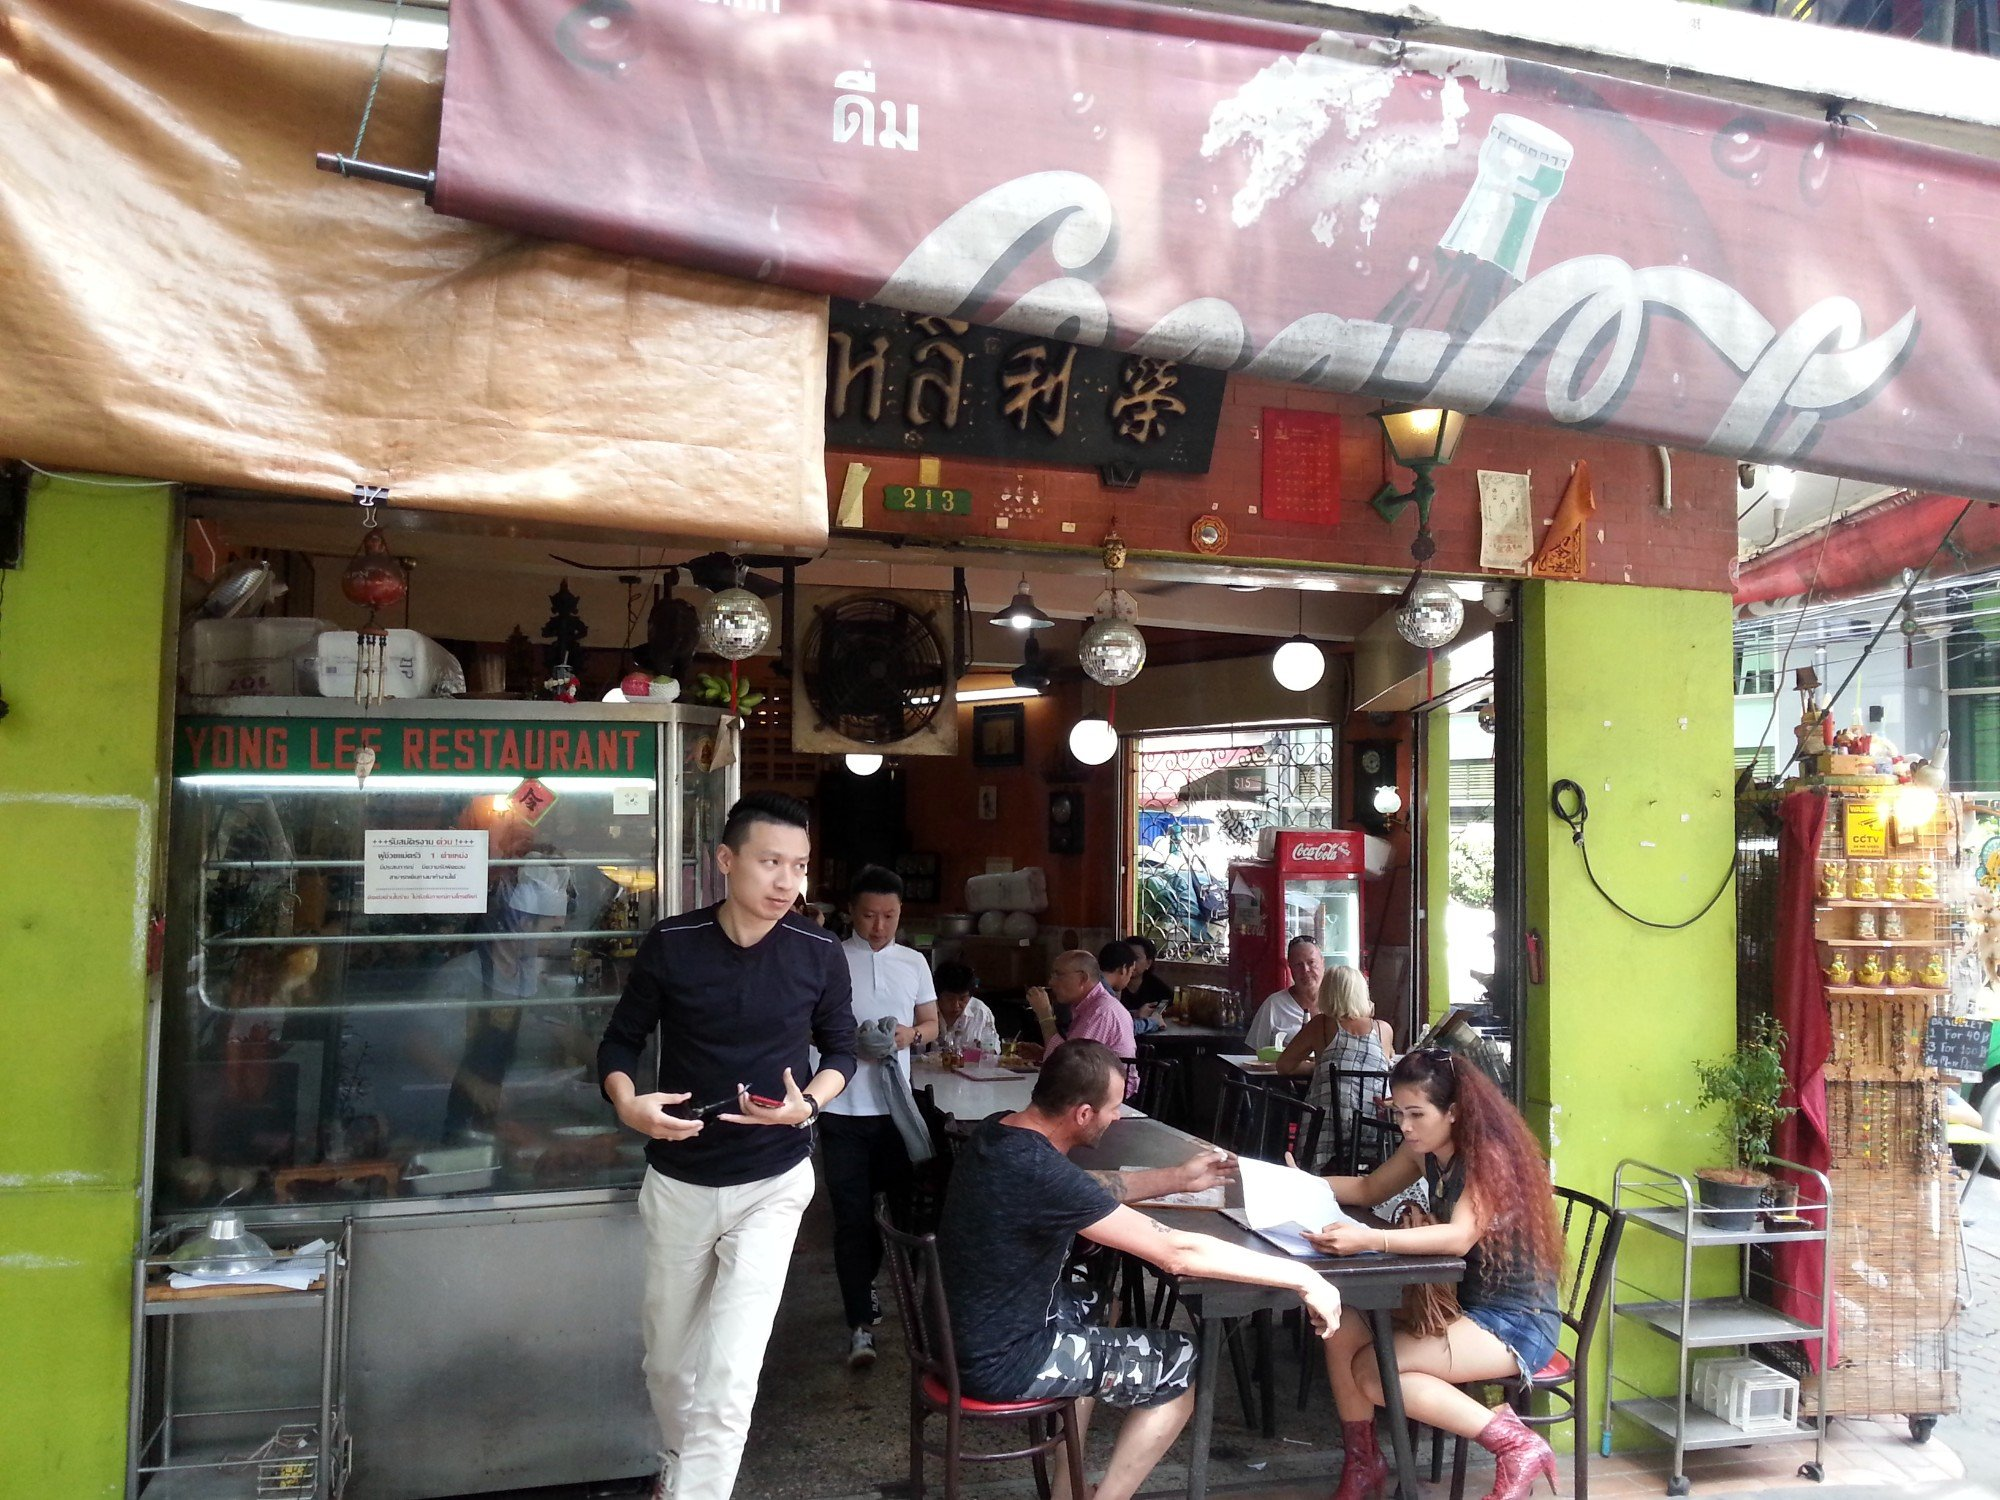 Yong Lee Restaurant in Bangkok